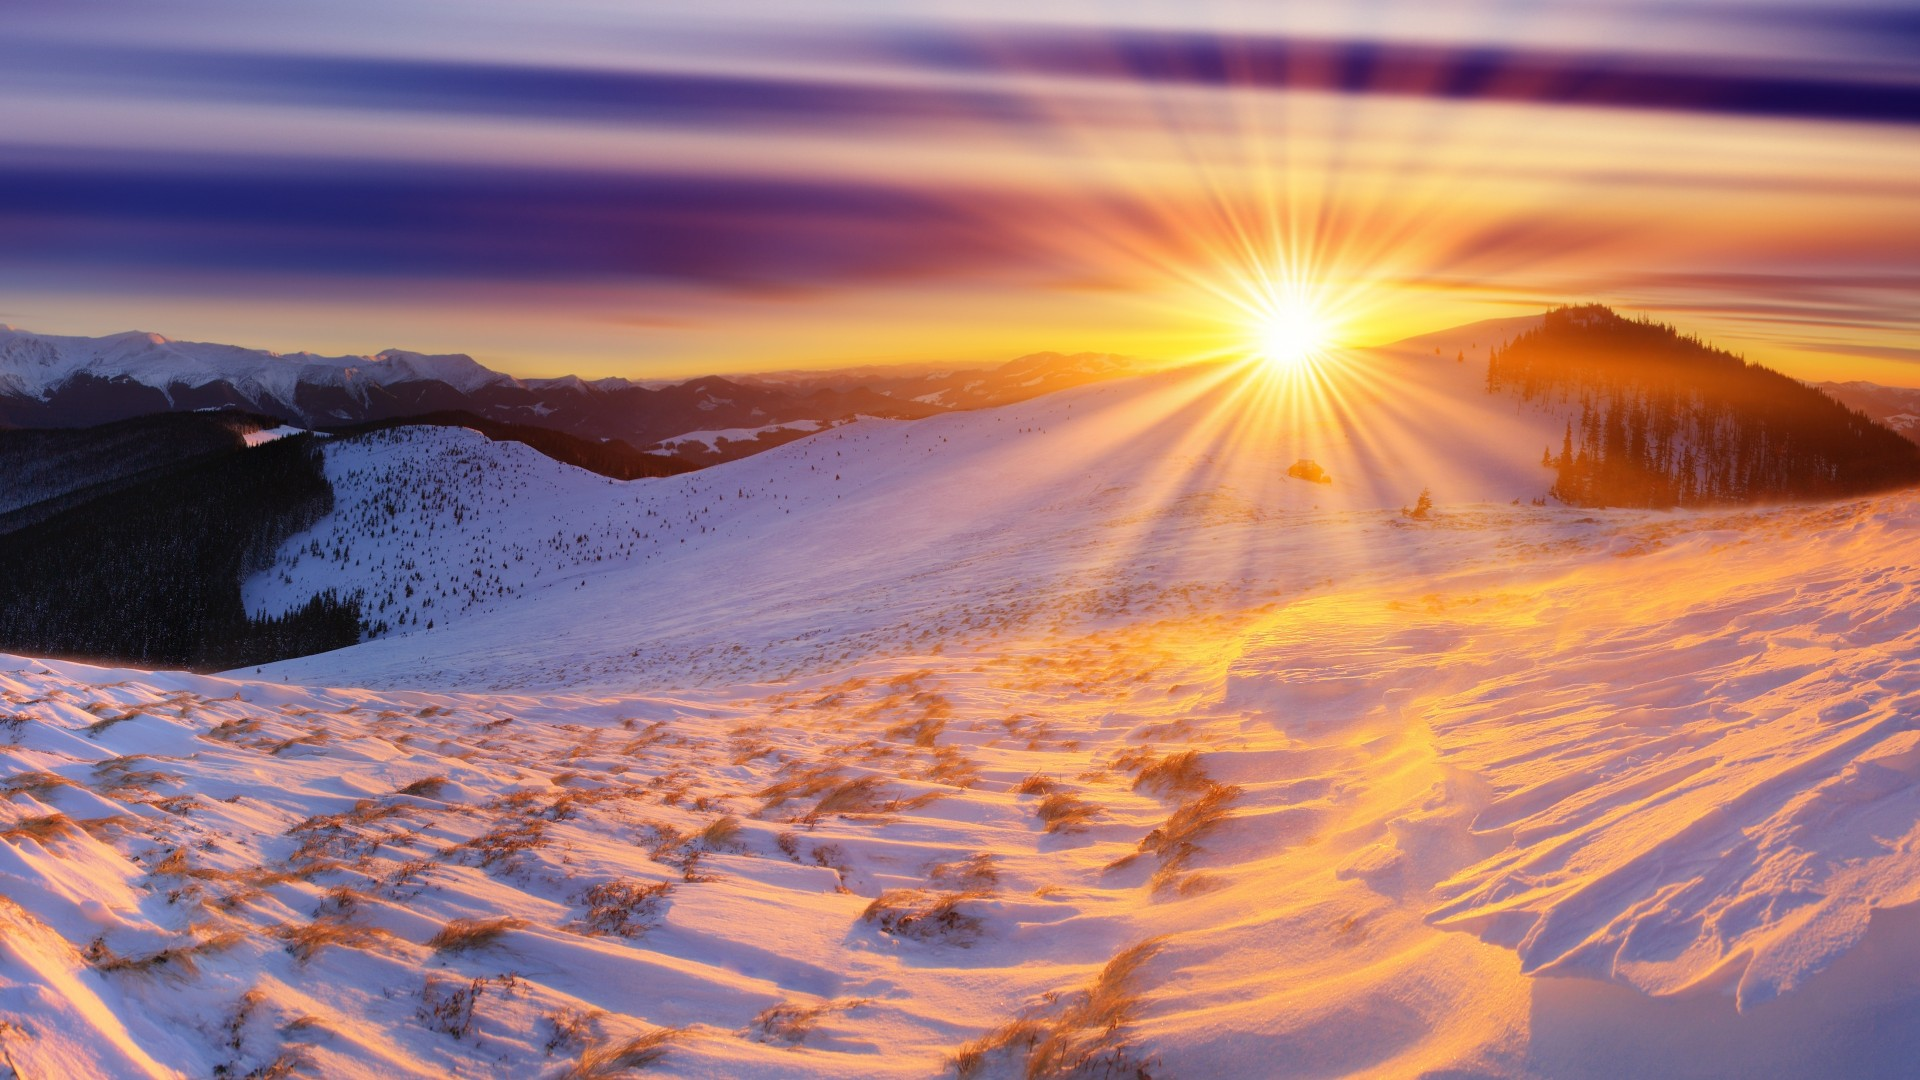 Nature landscapes mountains snow winter sky clouds hdr sunset sunrise wallpaper | 1920x1080 ...